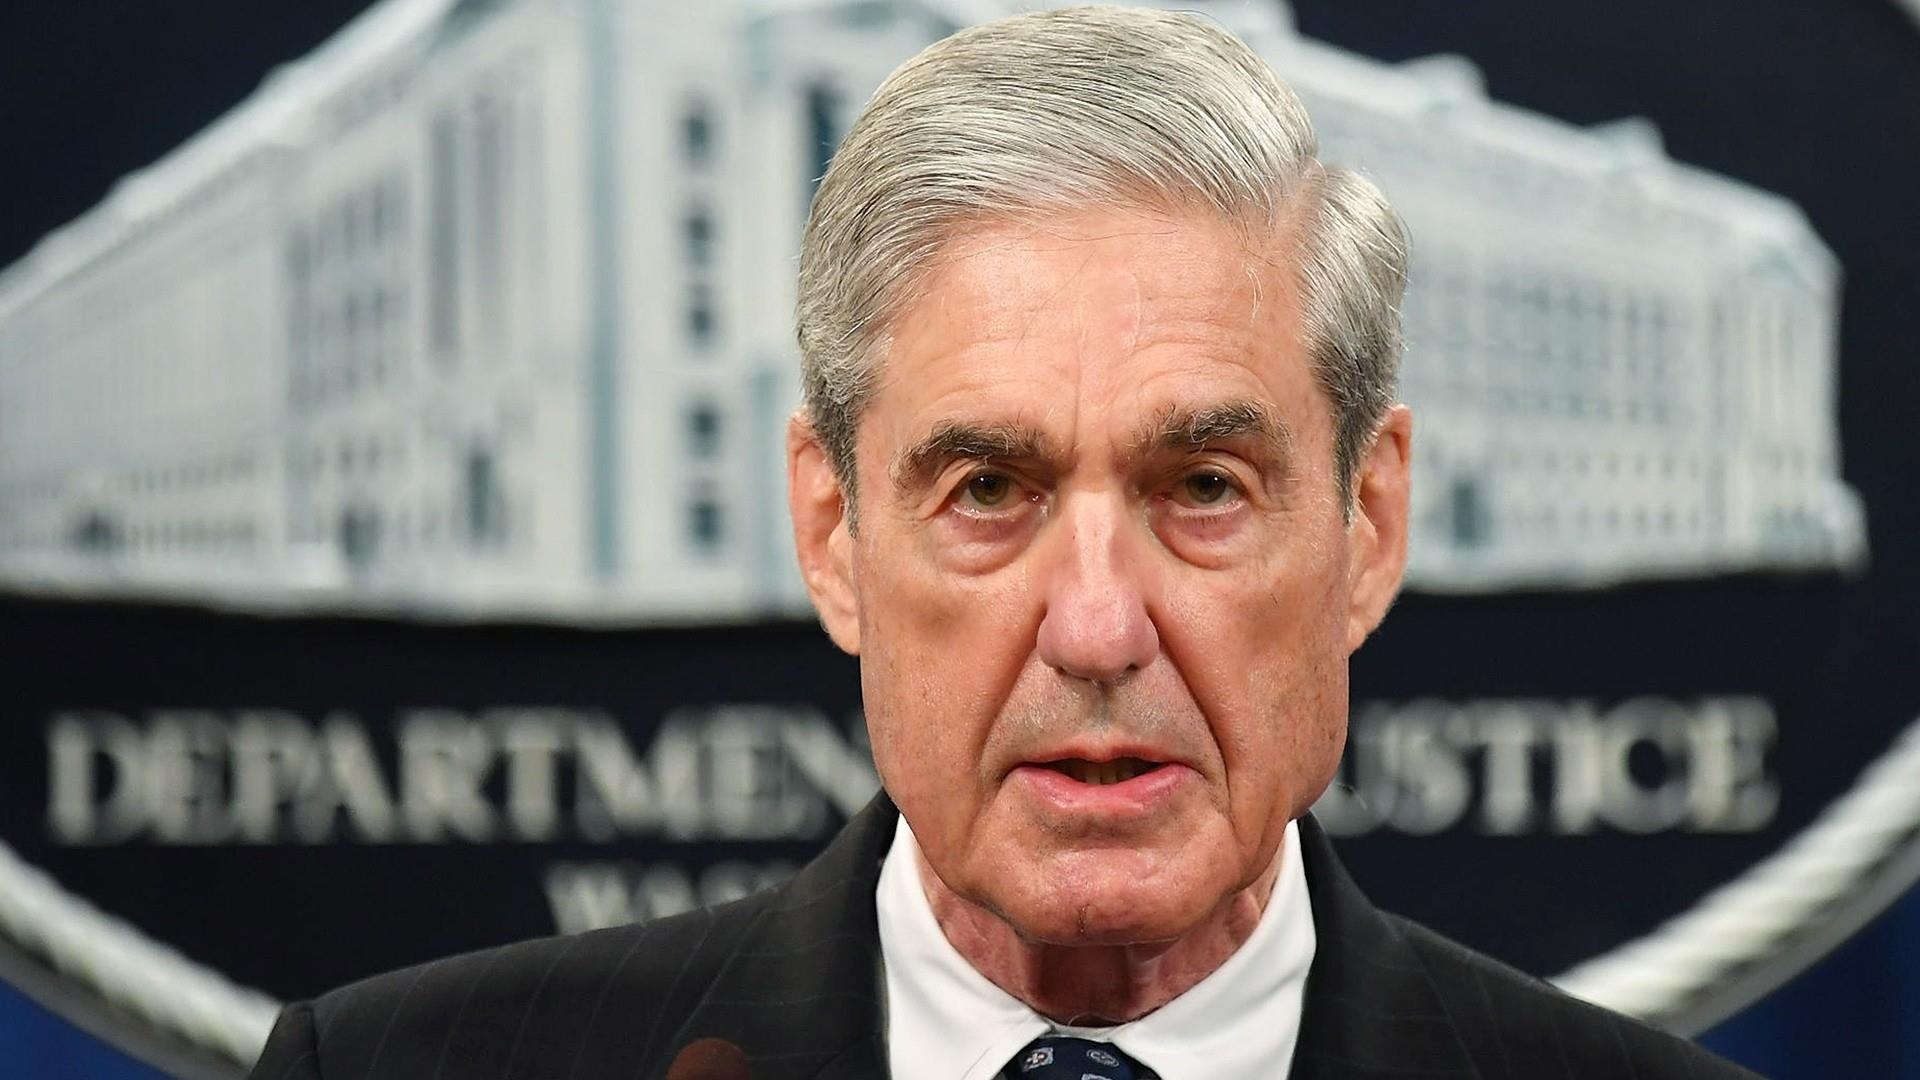 Mueller testimony: Inside the critical questions